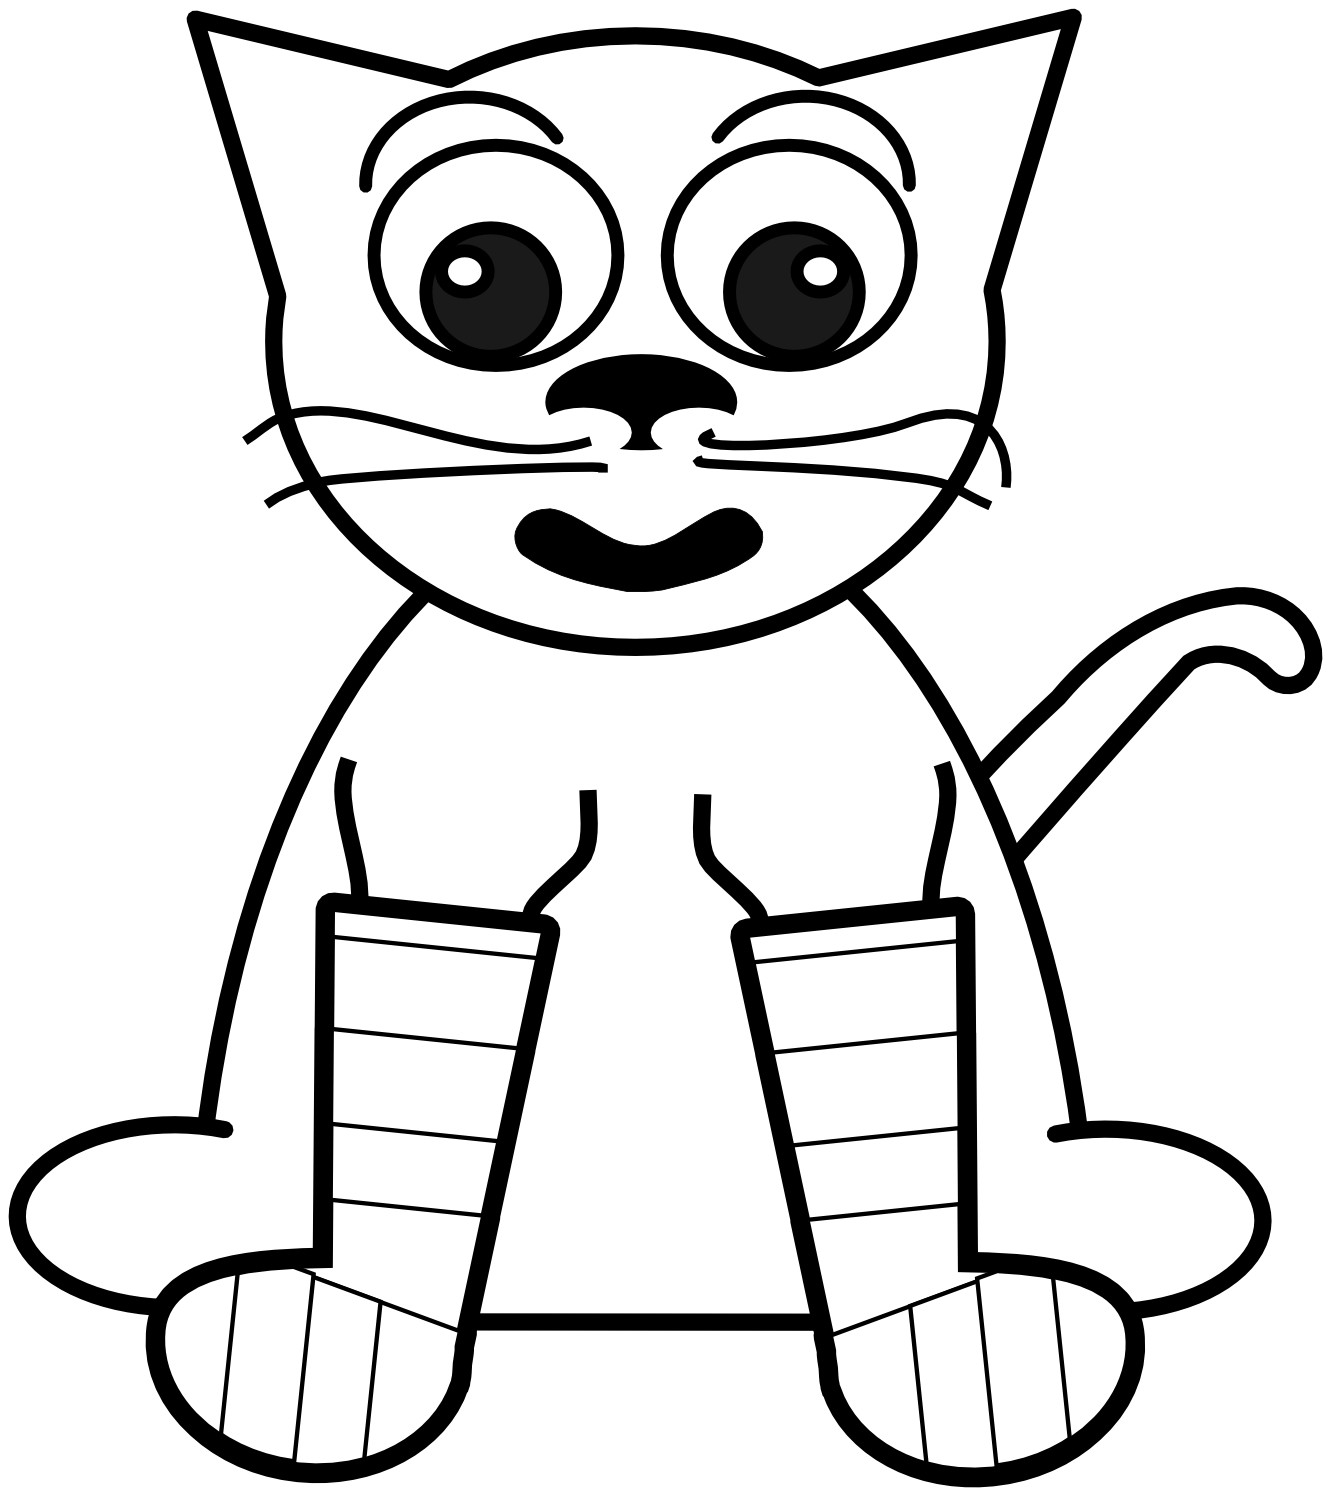 Line Drawing Rainbow : Line drawing of cat clipart best